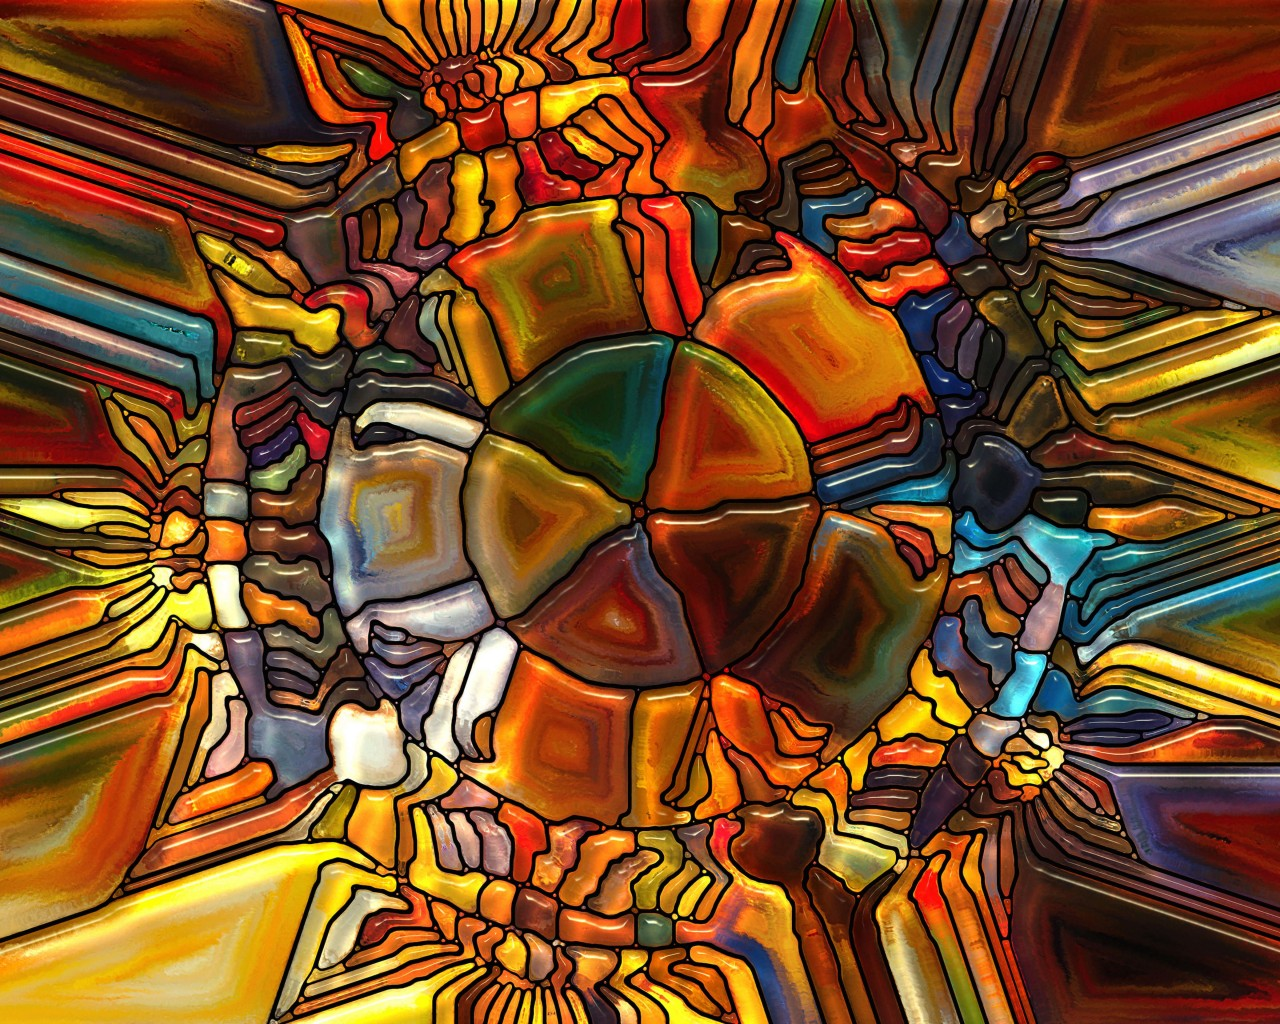 Psychedelic Stained Glass Wallpaper for Desktop 1280x1024